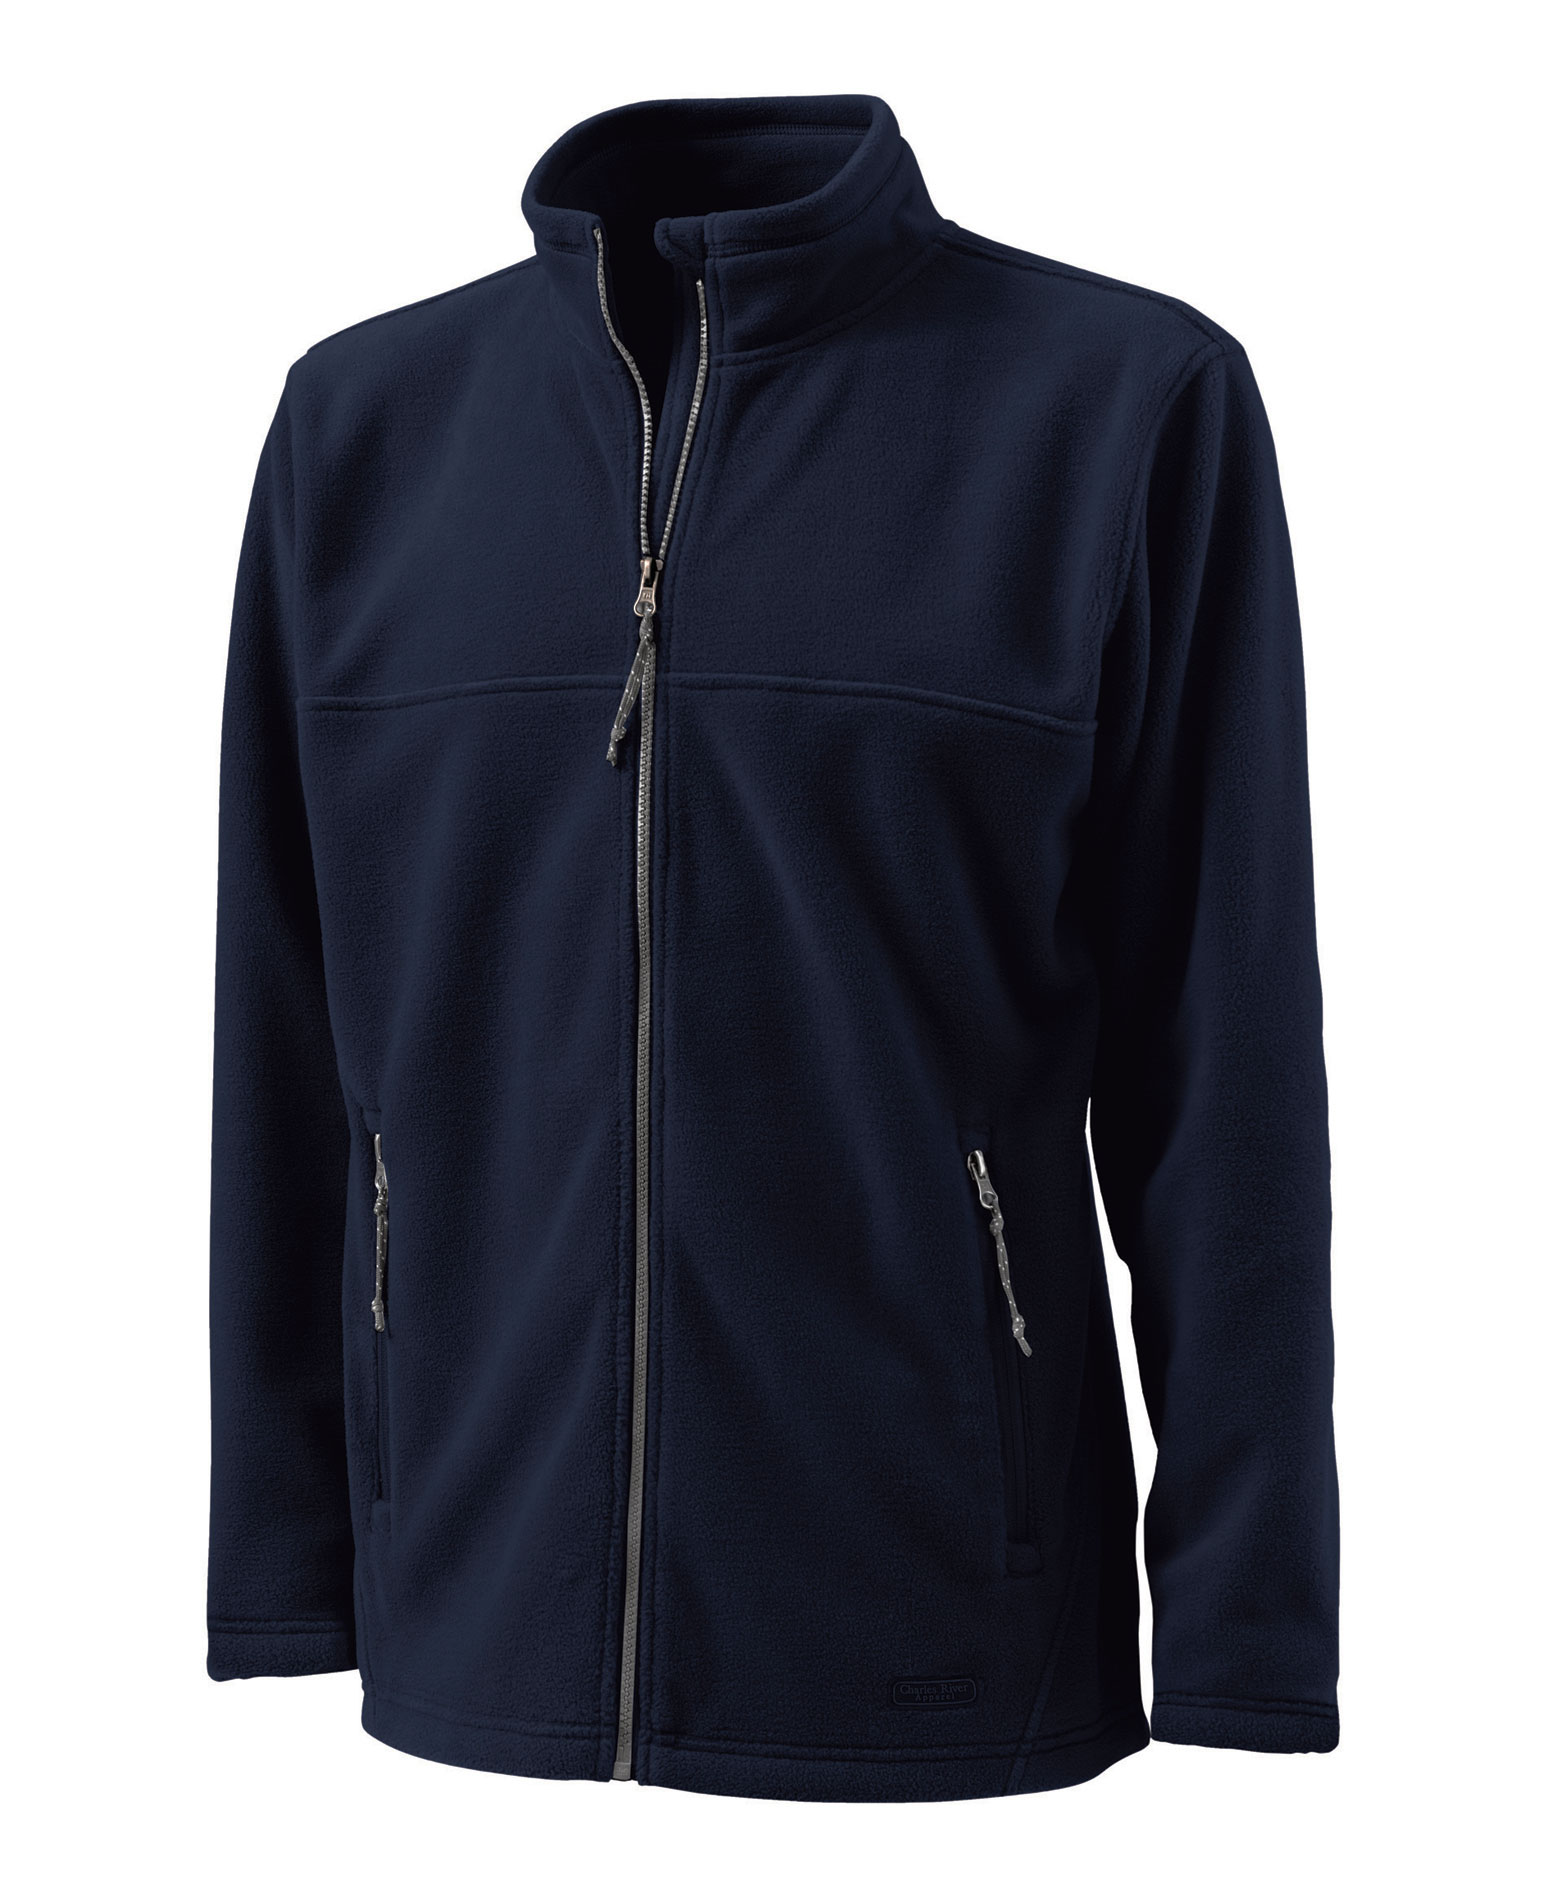 Boundary Fleece Adult Jacket by Charles River Apparel